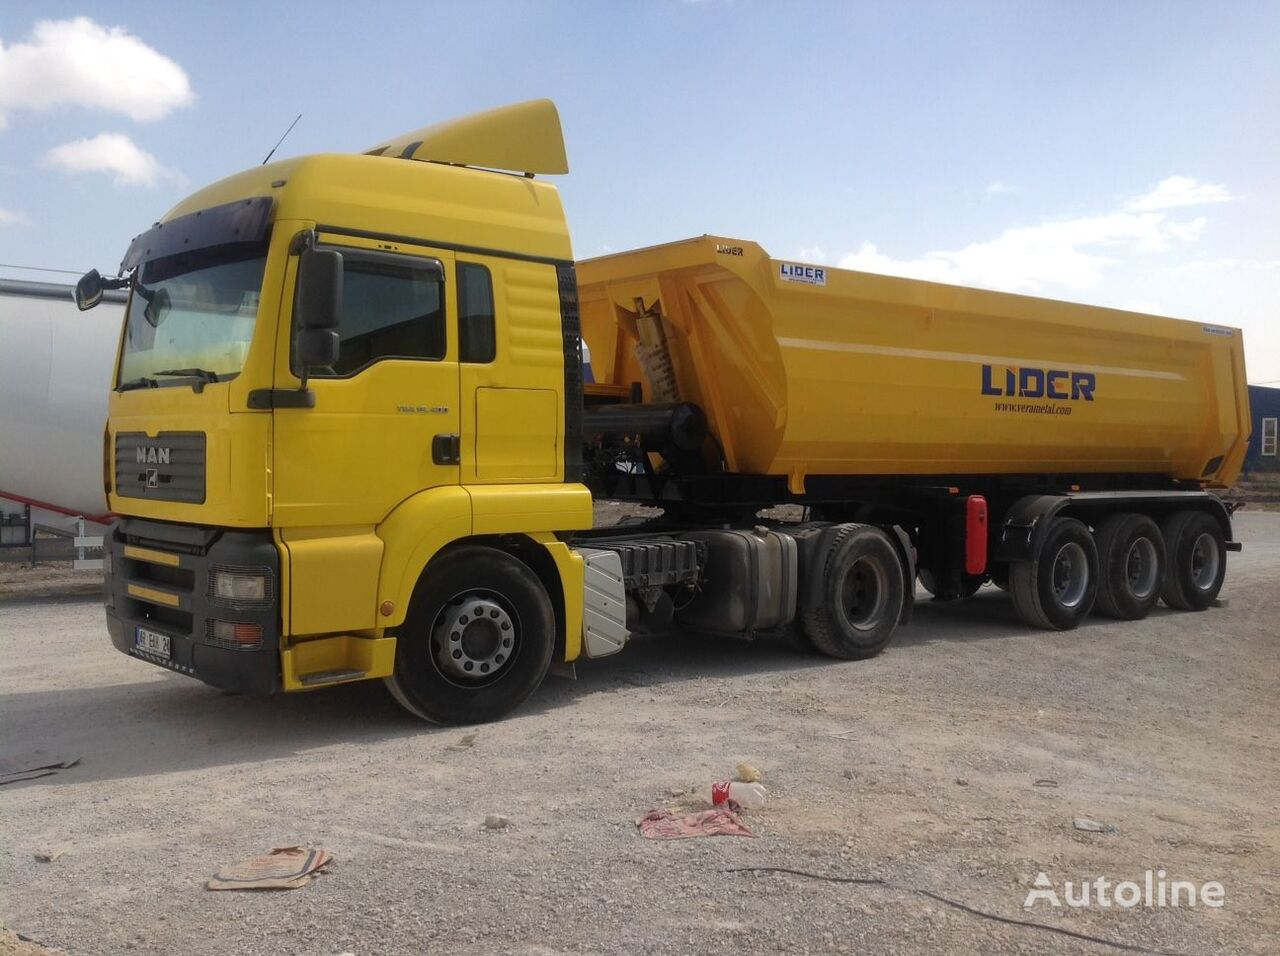 LIDER 2020 NEW DIRECTLY FROM MANUFACTURER COMPANY AVAILABLE IN STOCK semirremolque volquete nuevo